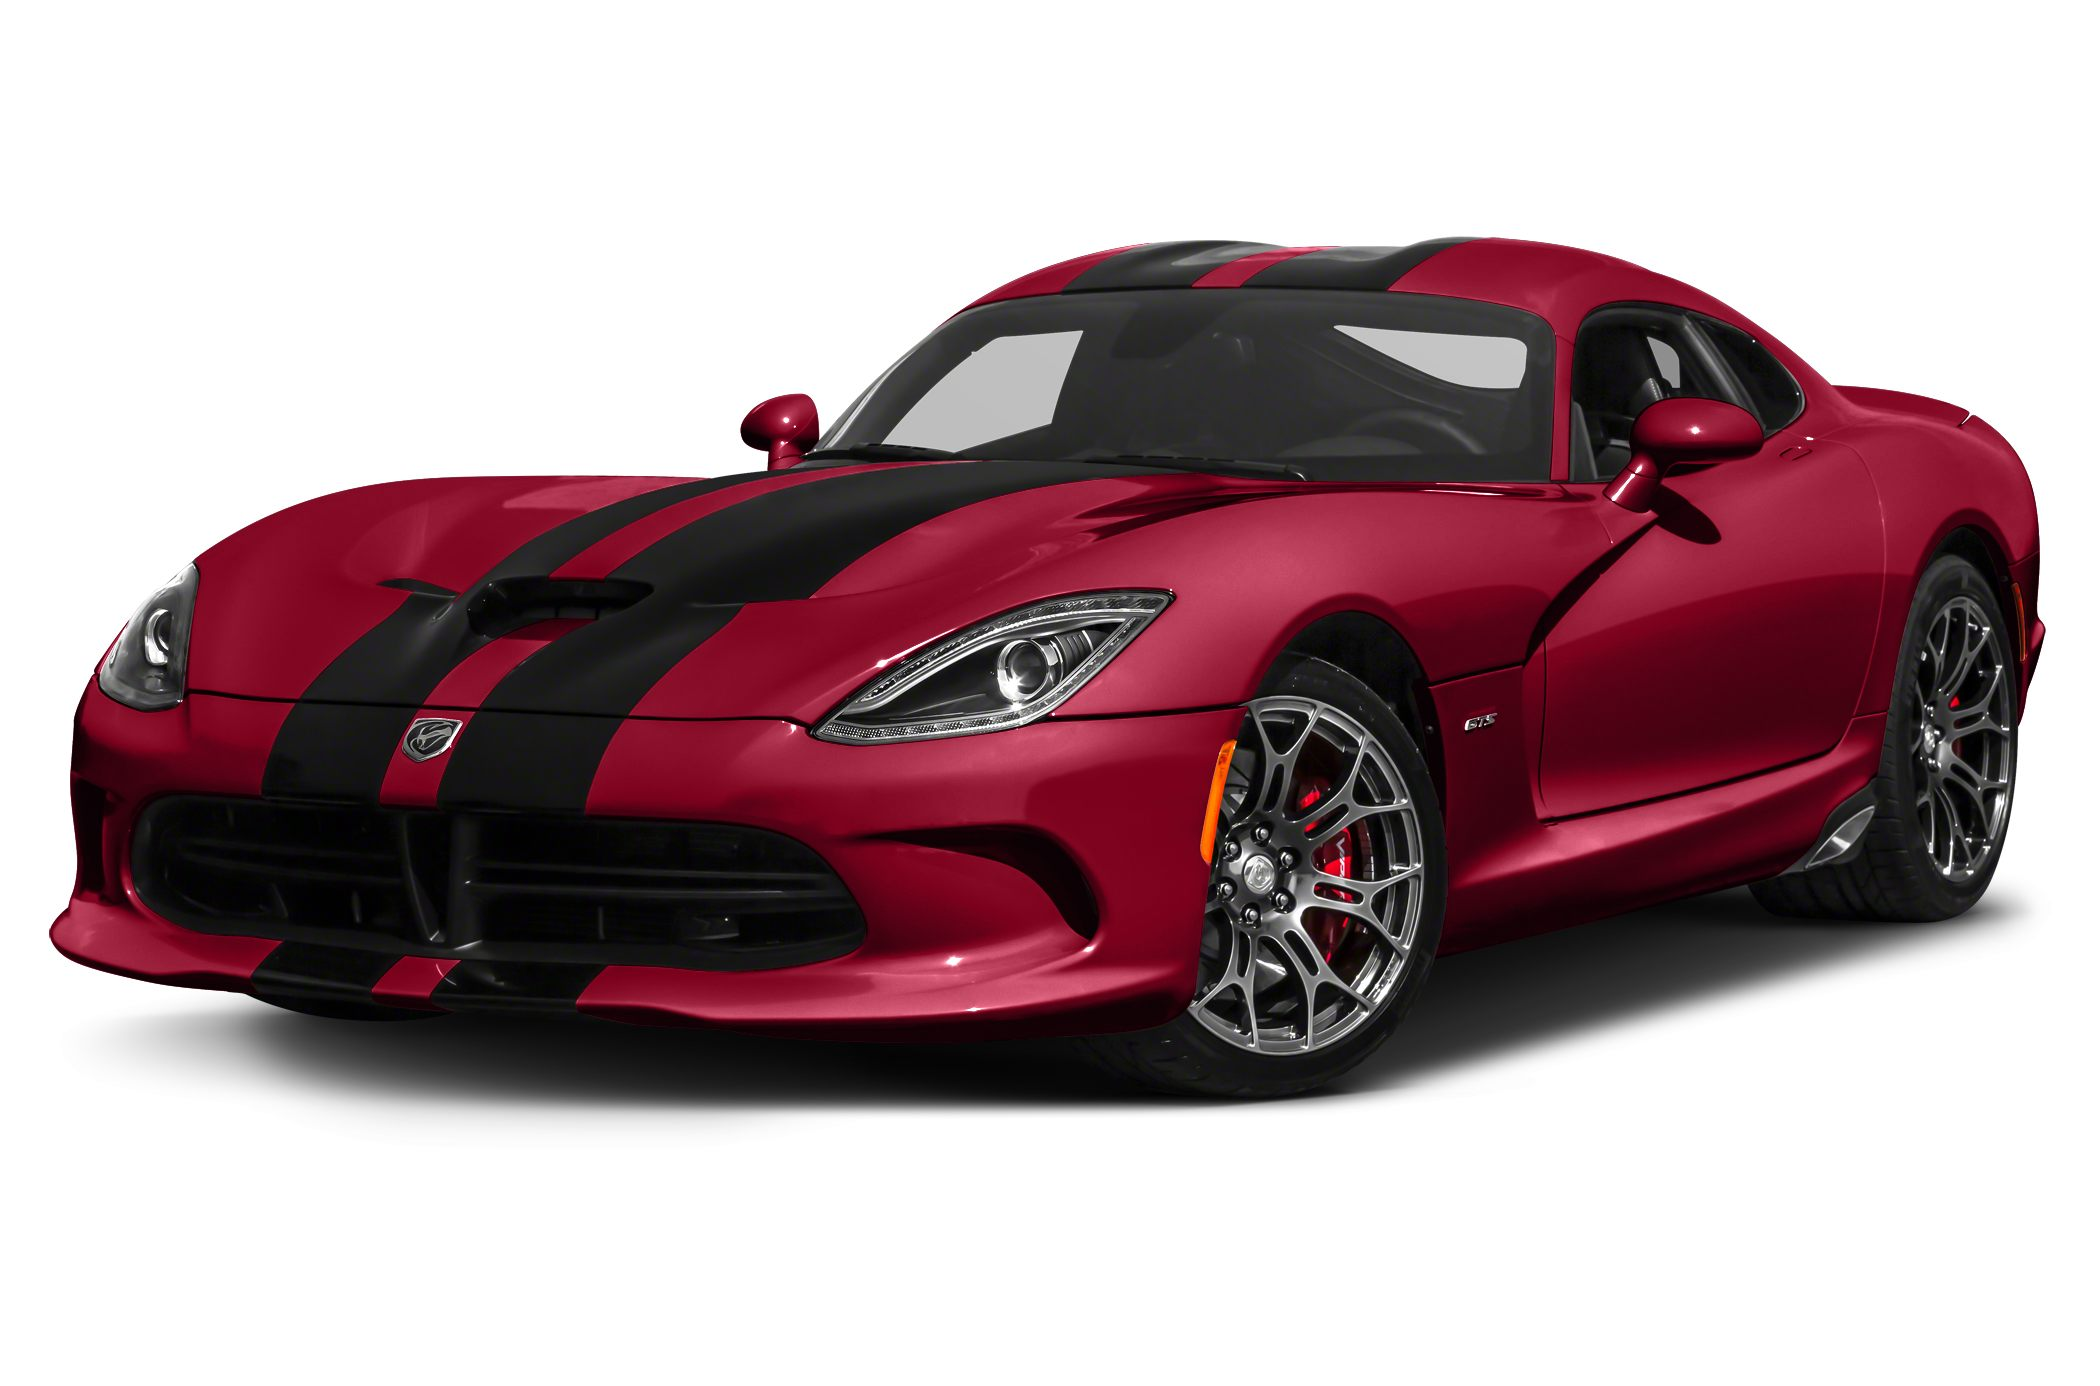 Dodge Viper News, Photos and Buying Information - Autoblog